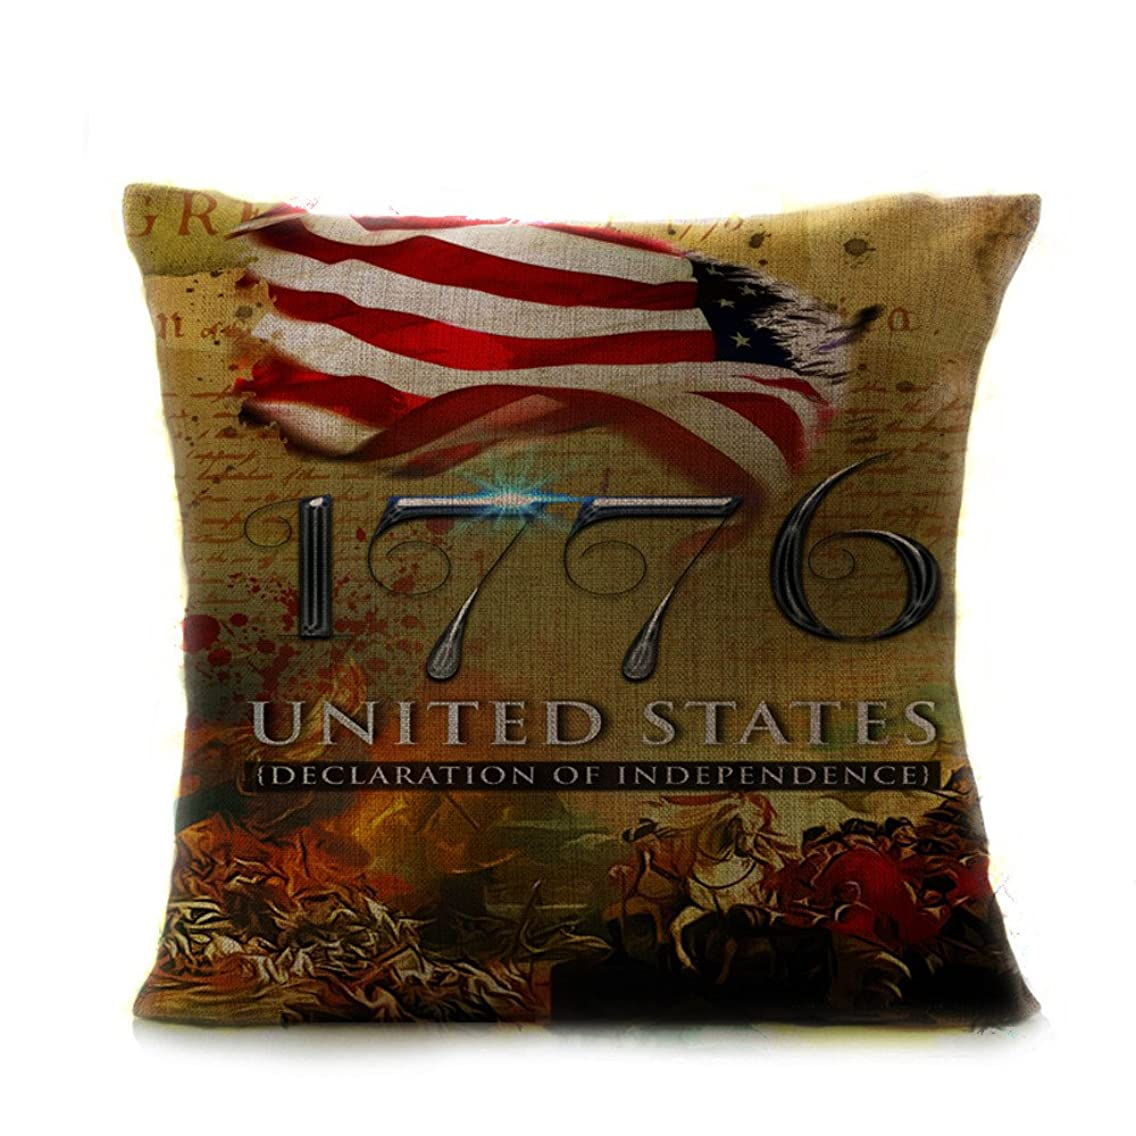 Vithconl Festival American Flag Print Pillow Covers, Independence Day American Flag 100% Cotton Pillow Case, Happy 4th of July, 18x18 Inch